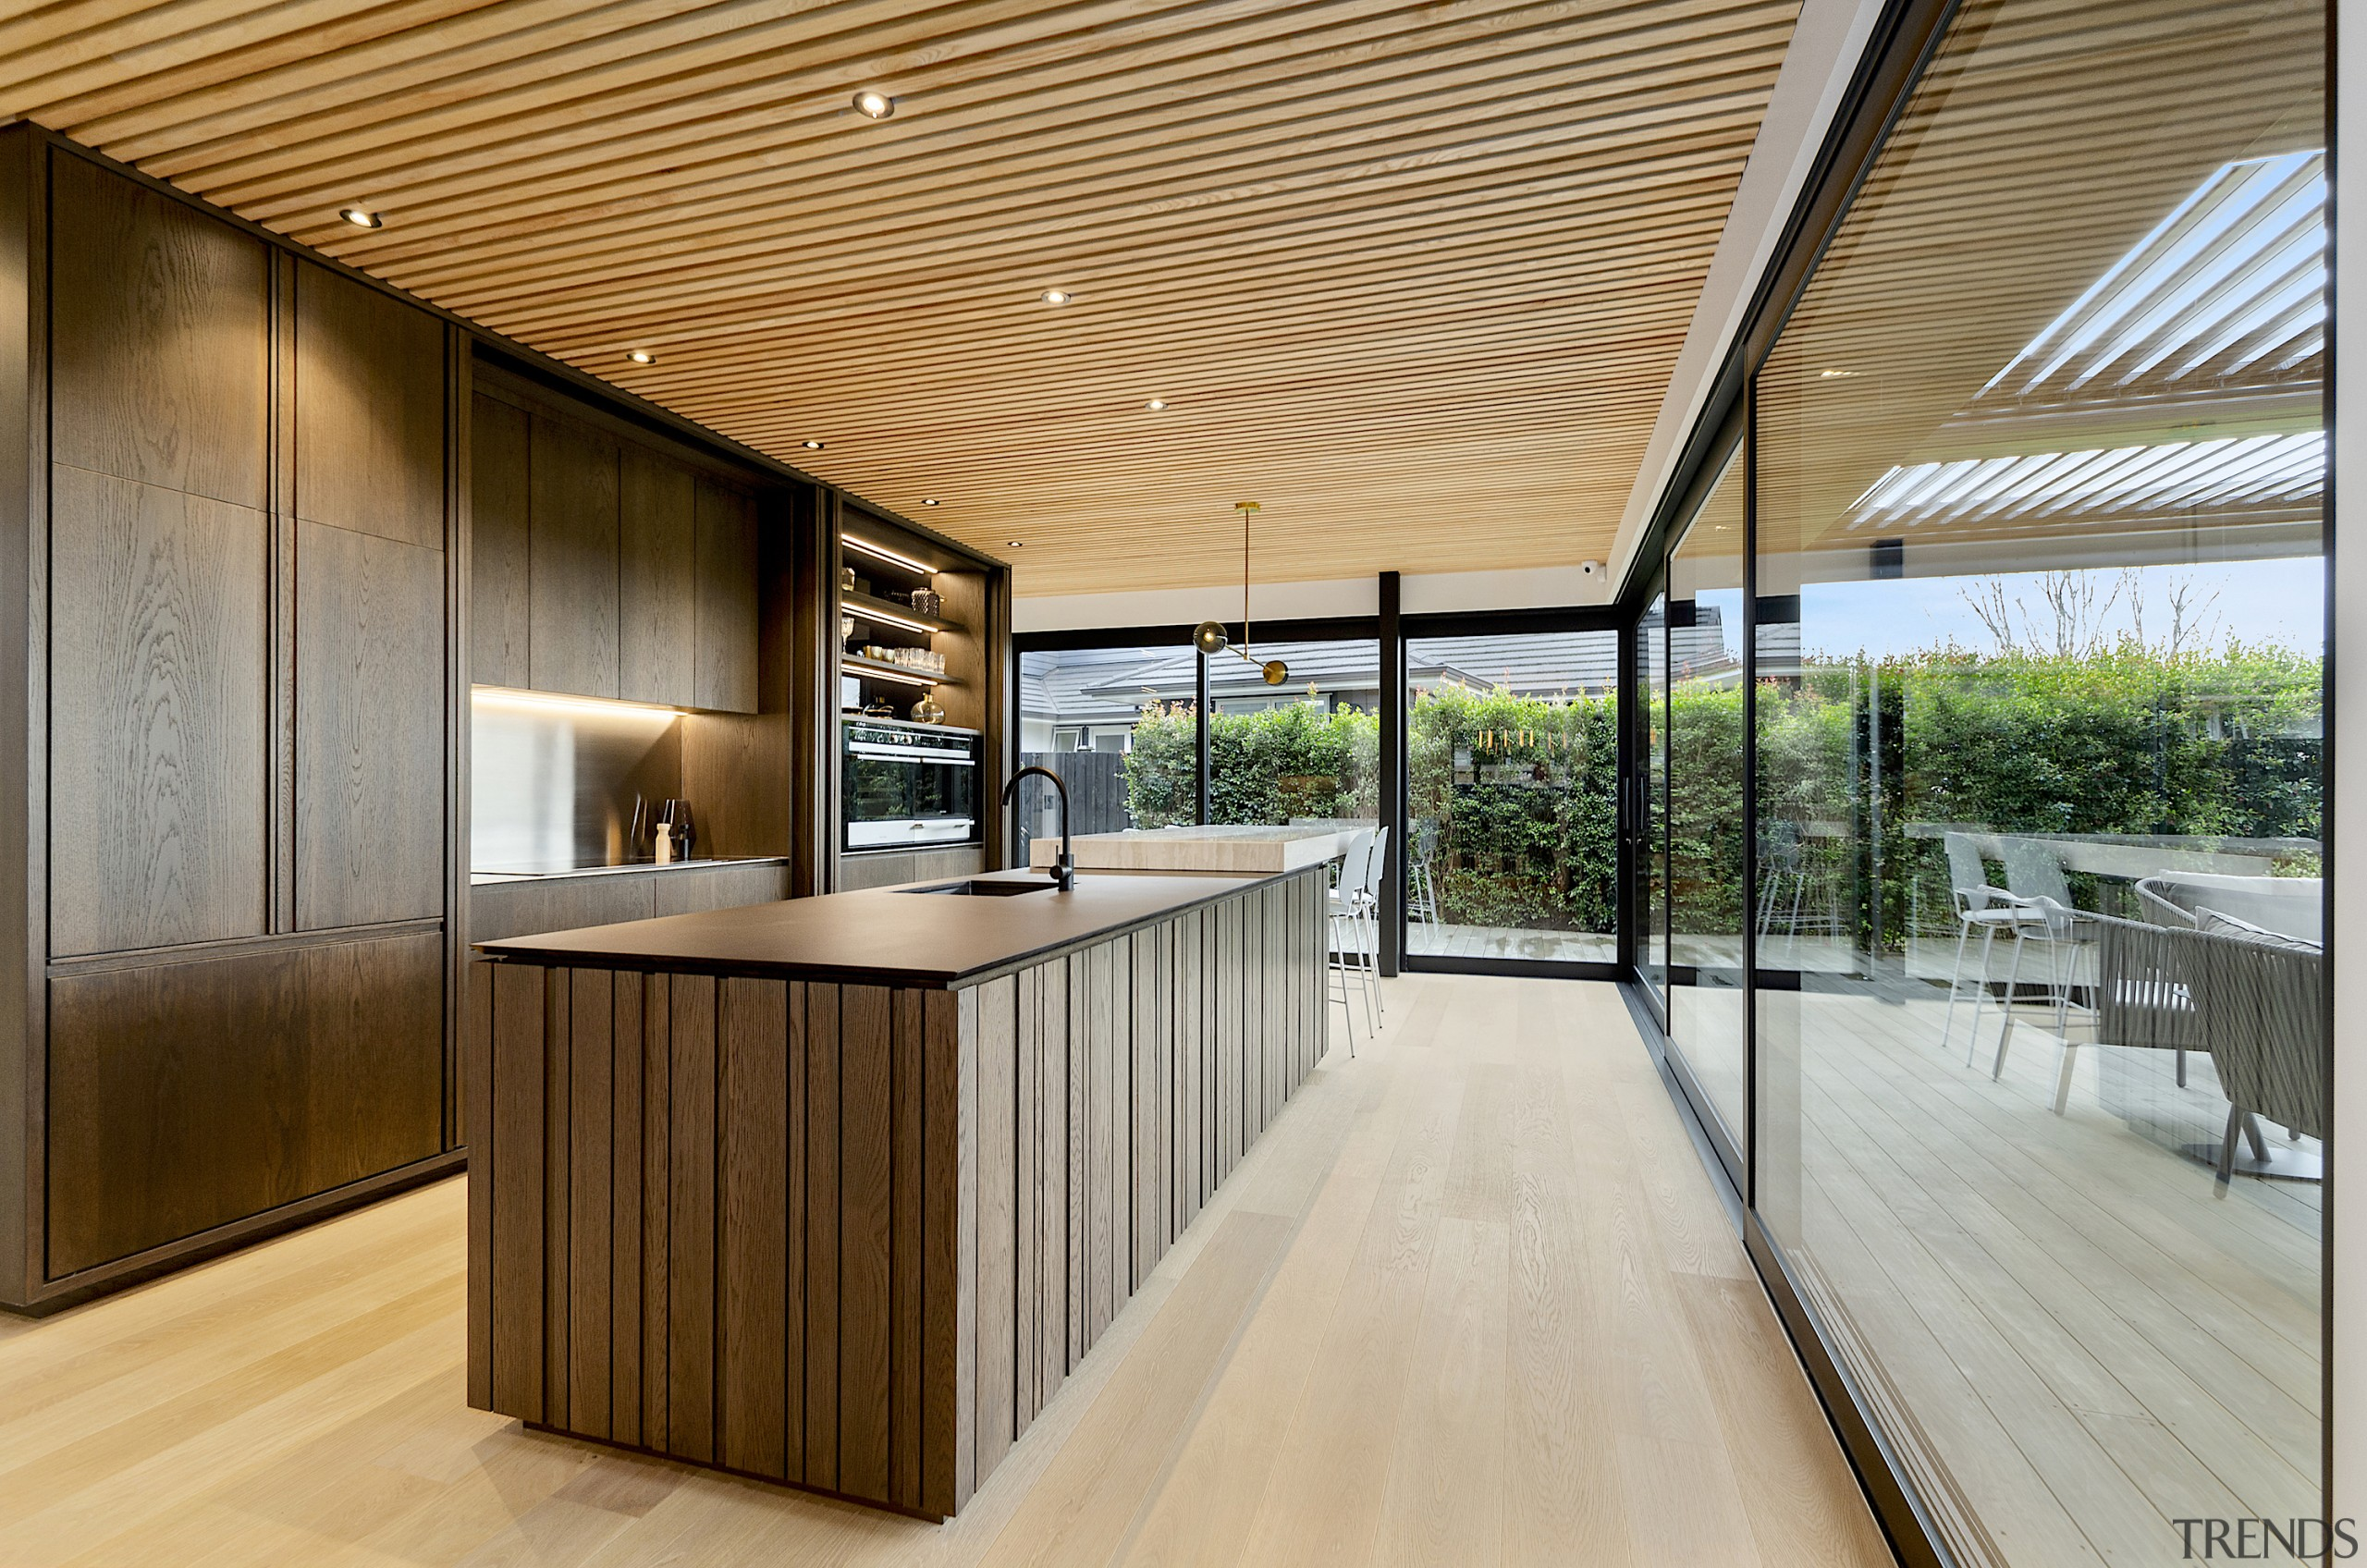 Deep in the woods – the kitchen island gray, brown